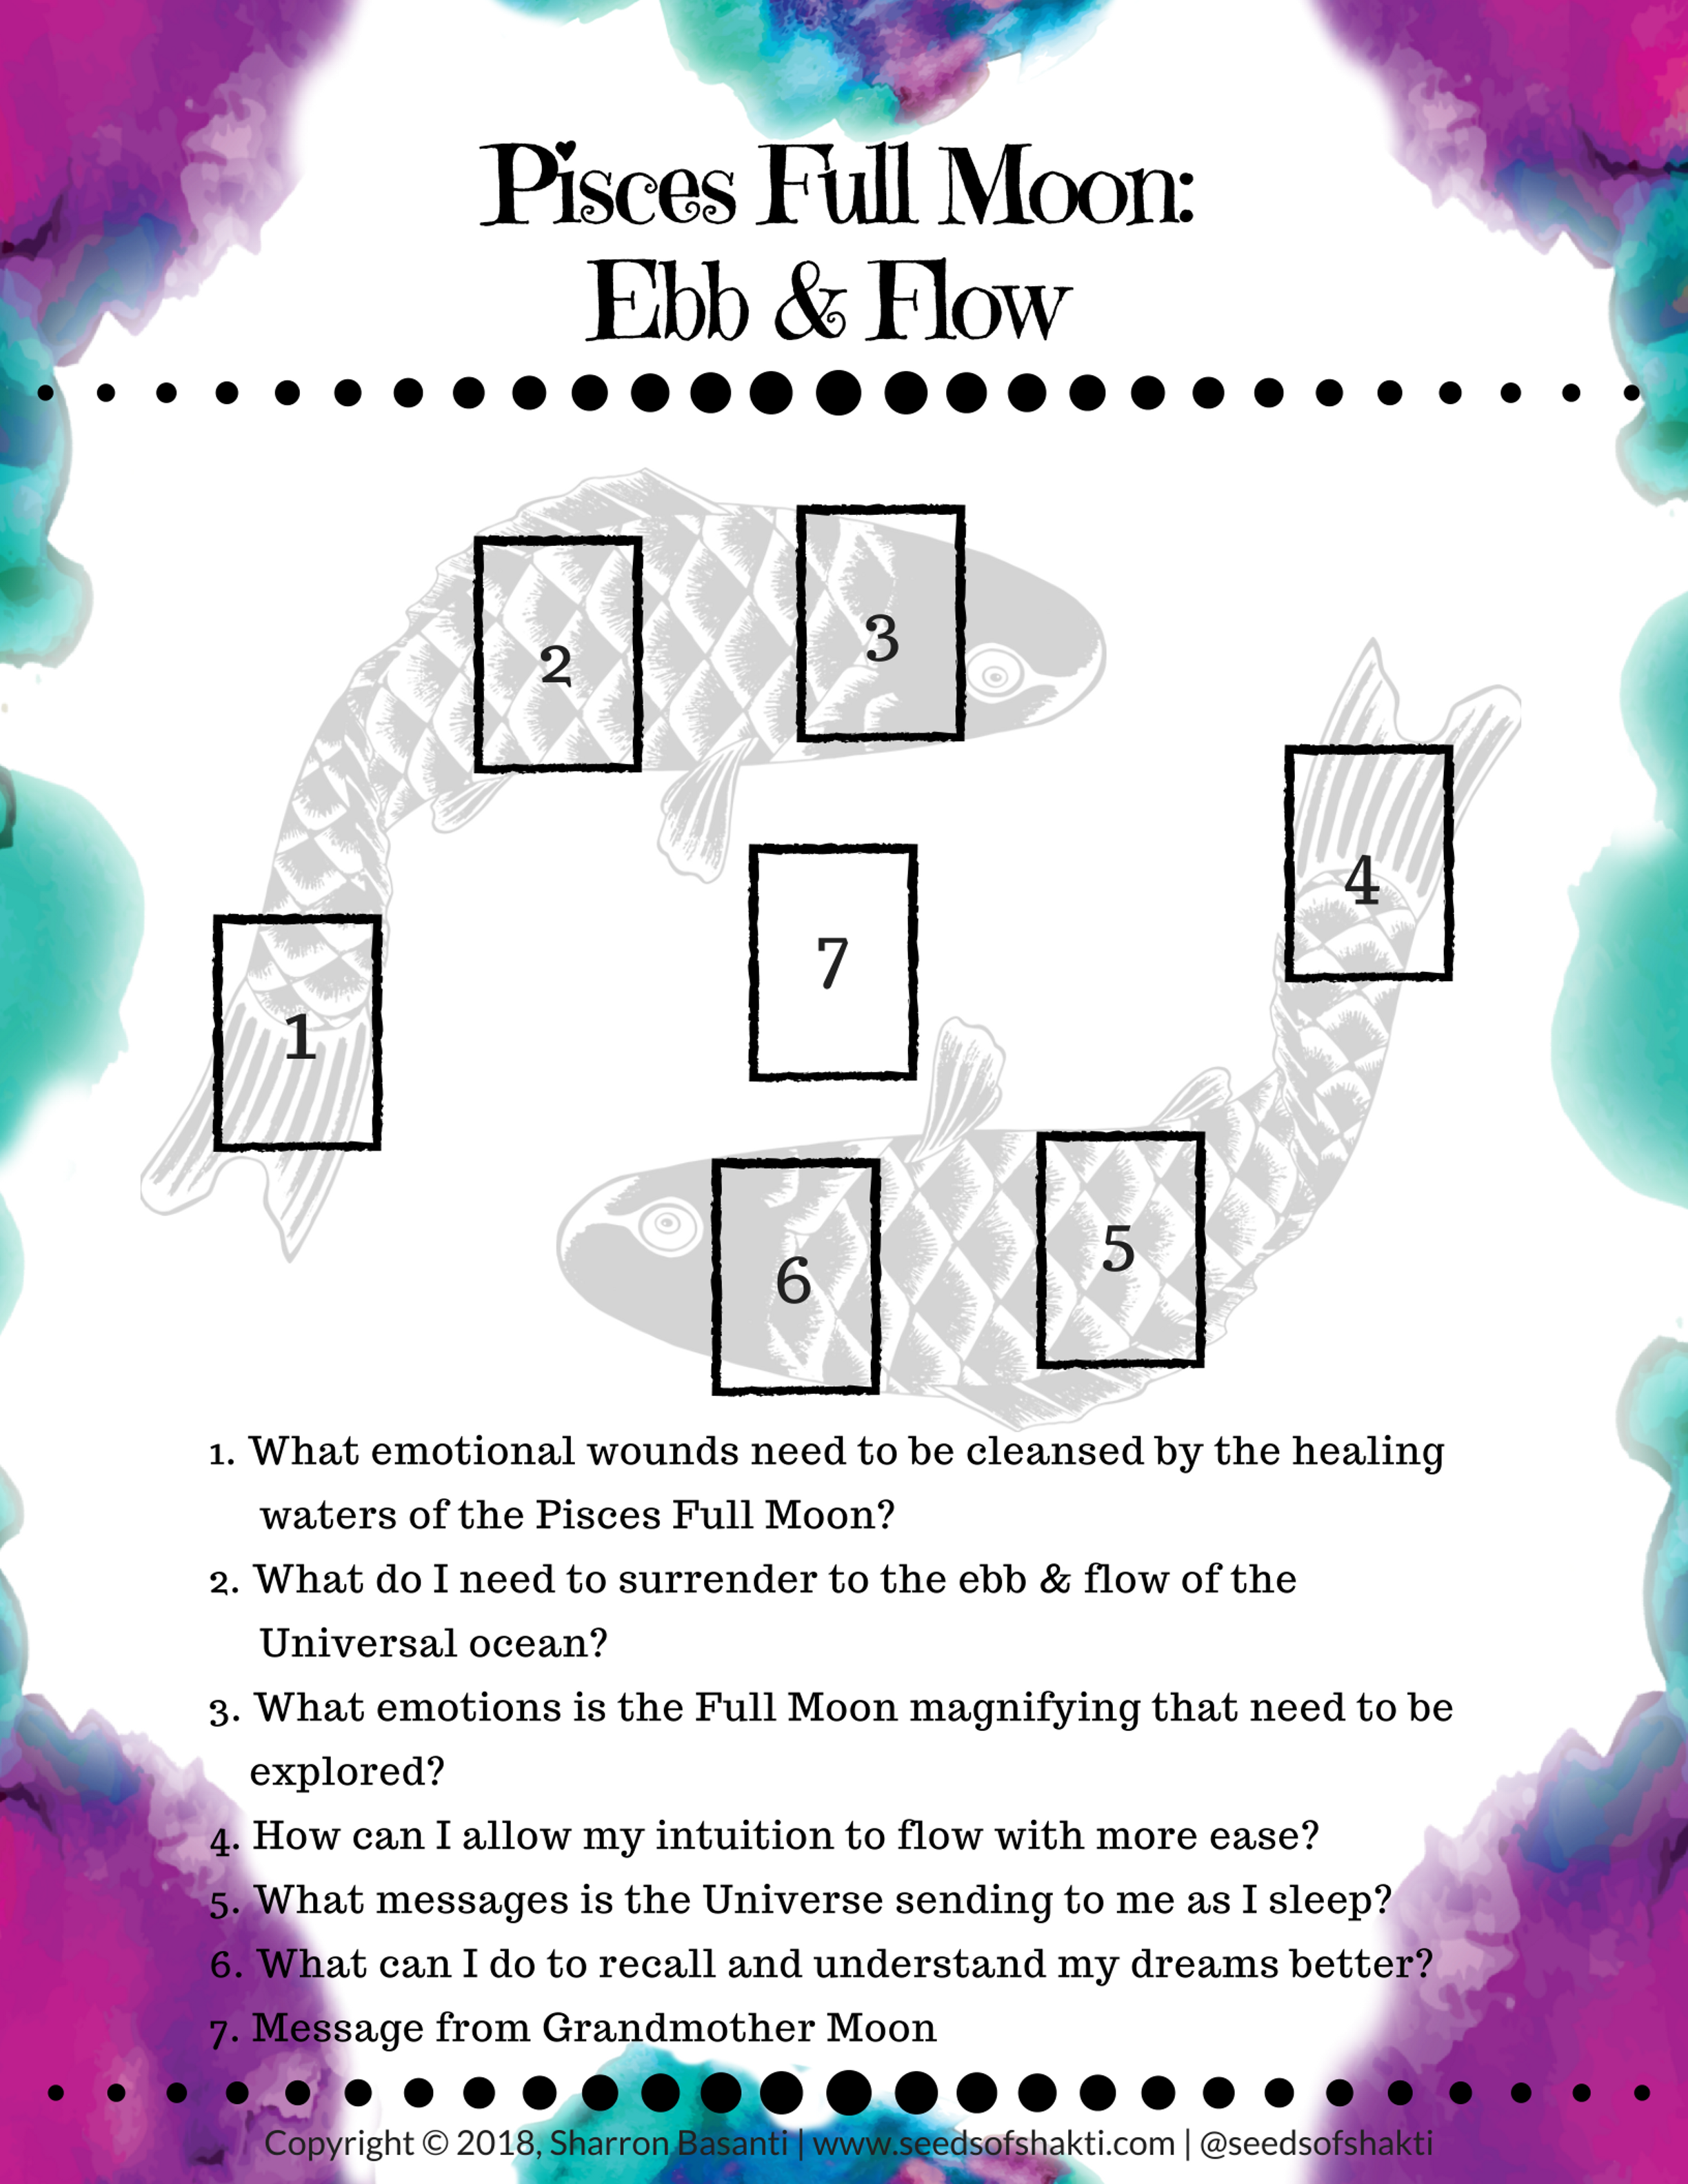 Download the Full Moon in Pisces Tarot & Oracle spread and read about the ritual! #fullmoontarotspread